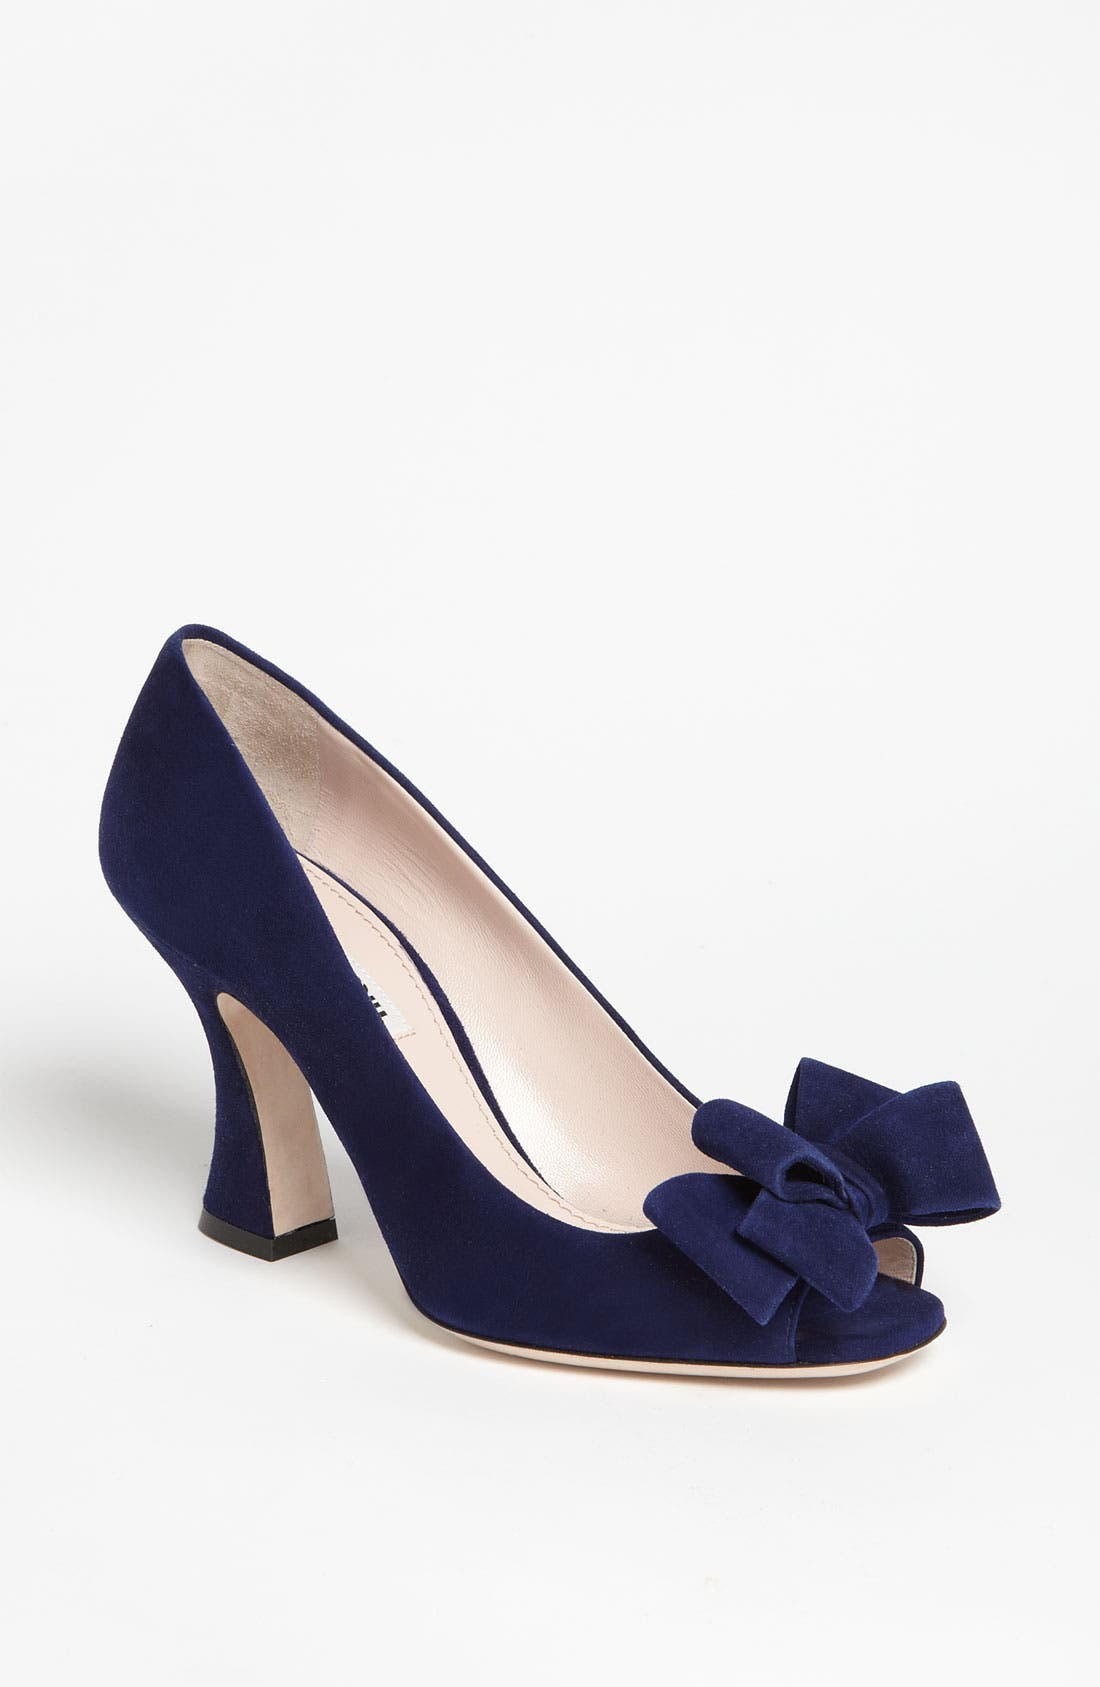 Alternate Image 1 Selected - Miu Miu Bow Pump